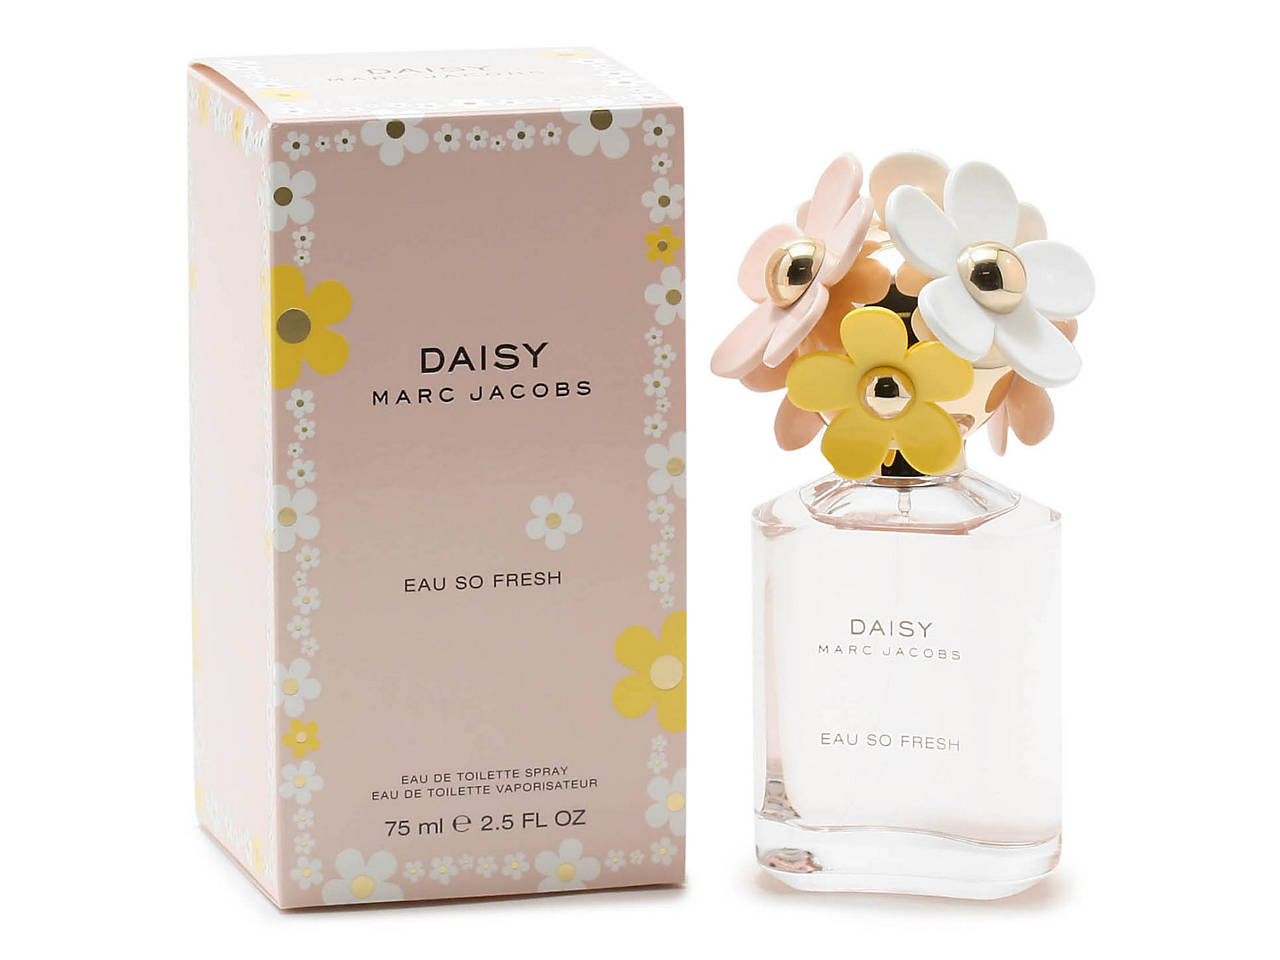 Marc Jacobs Fragrance Daisy Eau So Fresh Eau De Toilette Spray